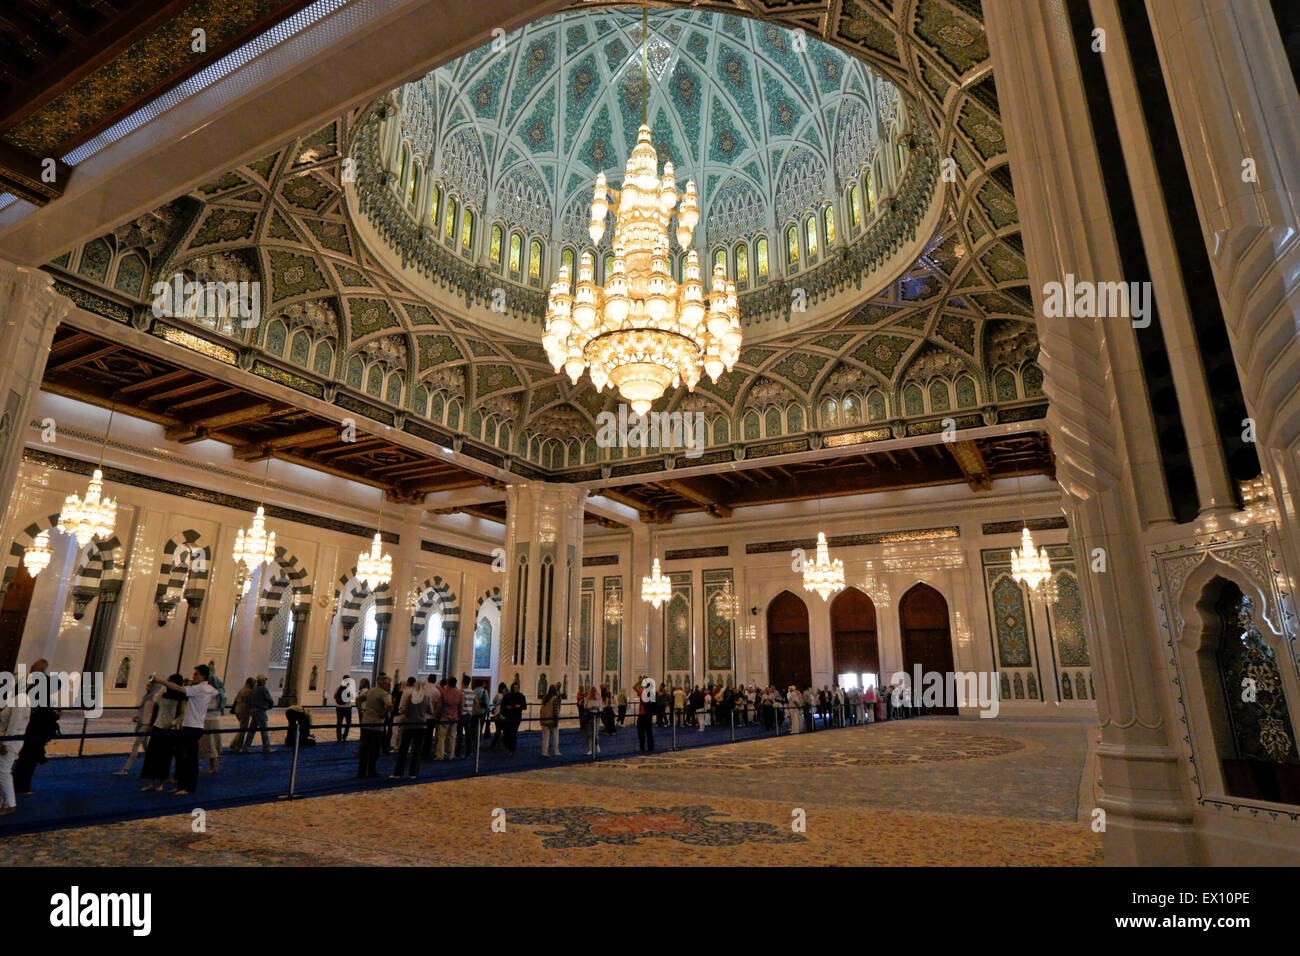 Dome and crystal chandelier interior of sultan qaboos grand mosque dome and crystal chandelier interior of sultan qaboos grand mosque muscat oman aloadofball Images